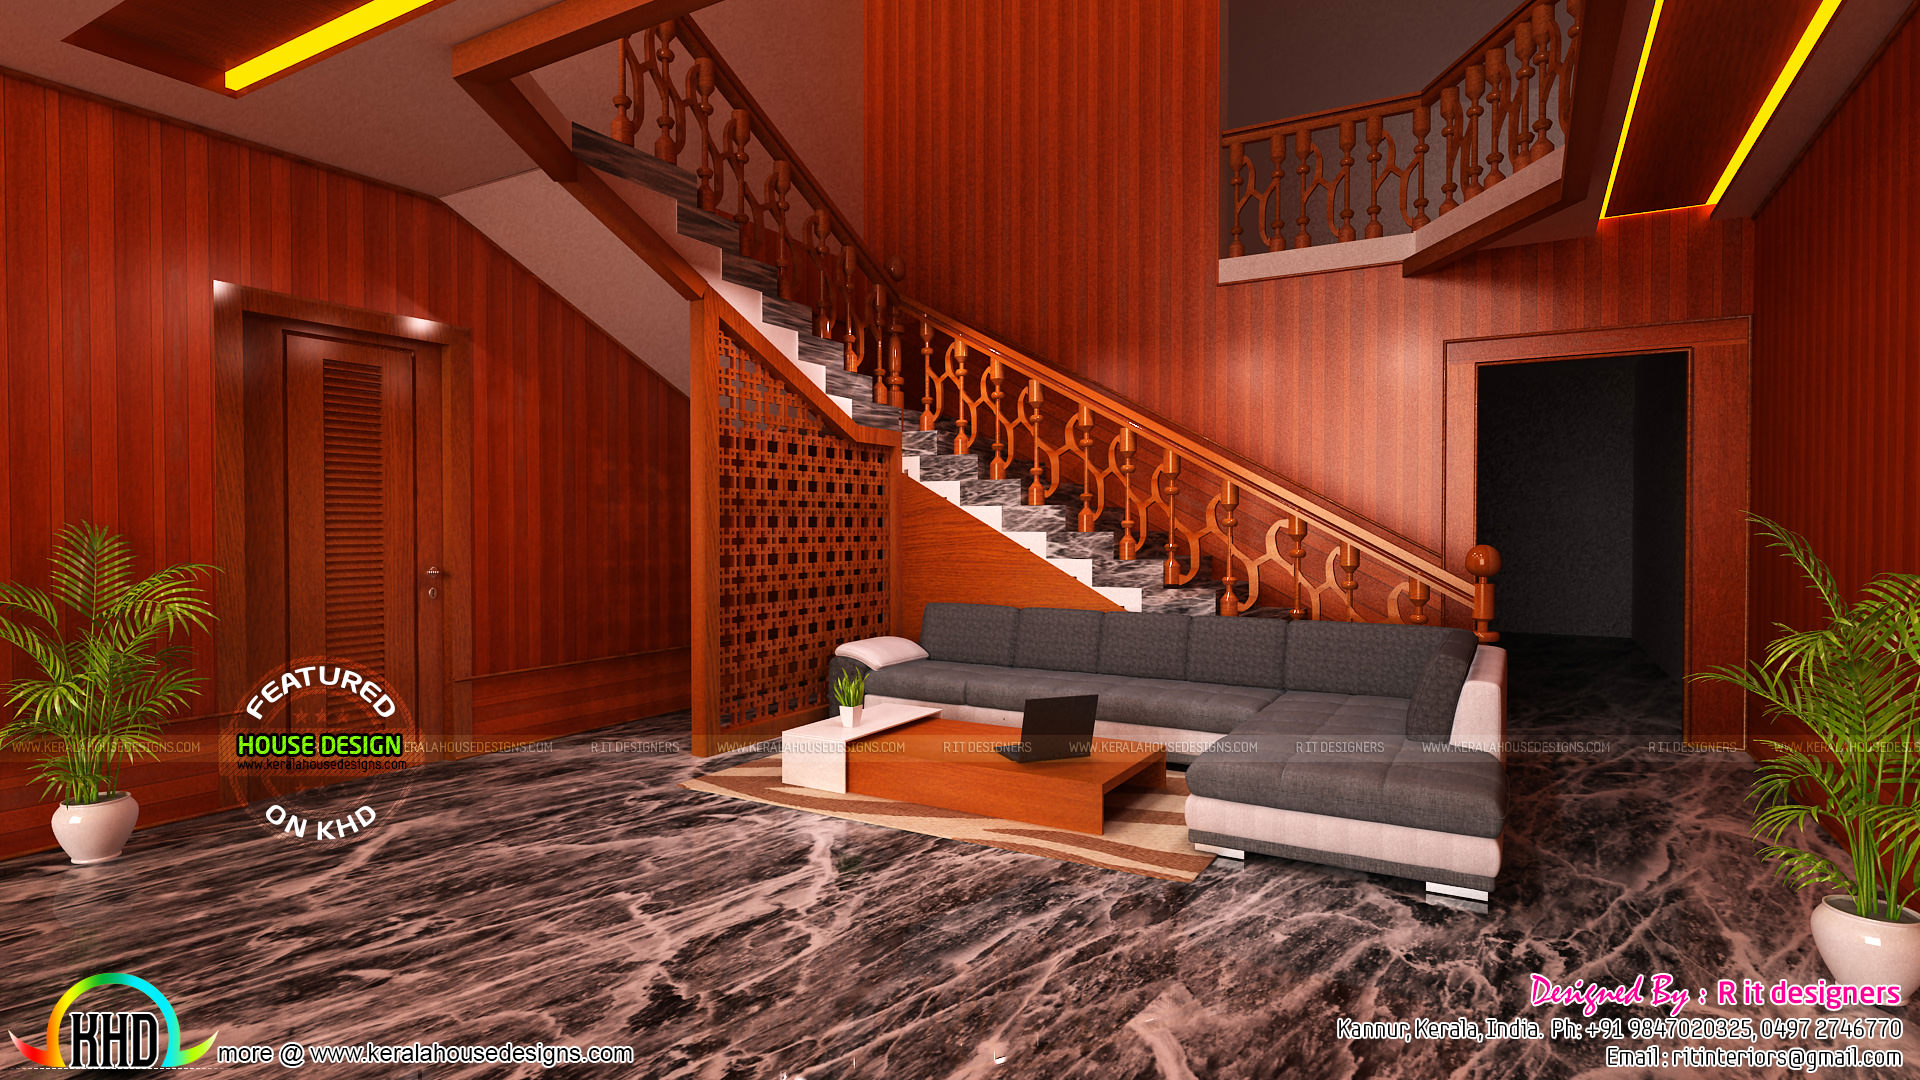 Bedroom kitchen living and foyer interiors kerala home for Kerala foyer designs